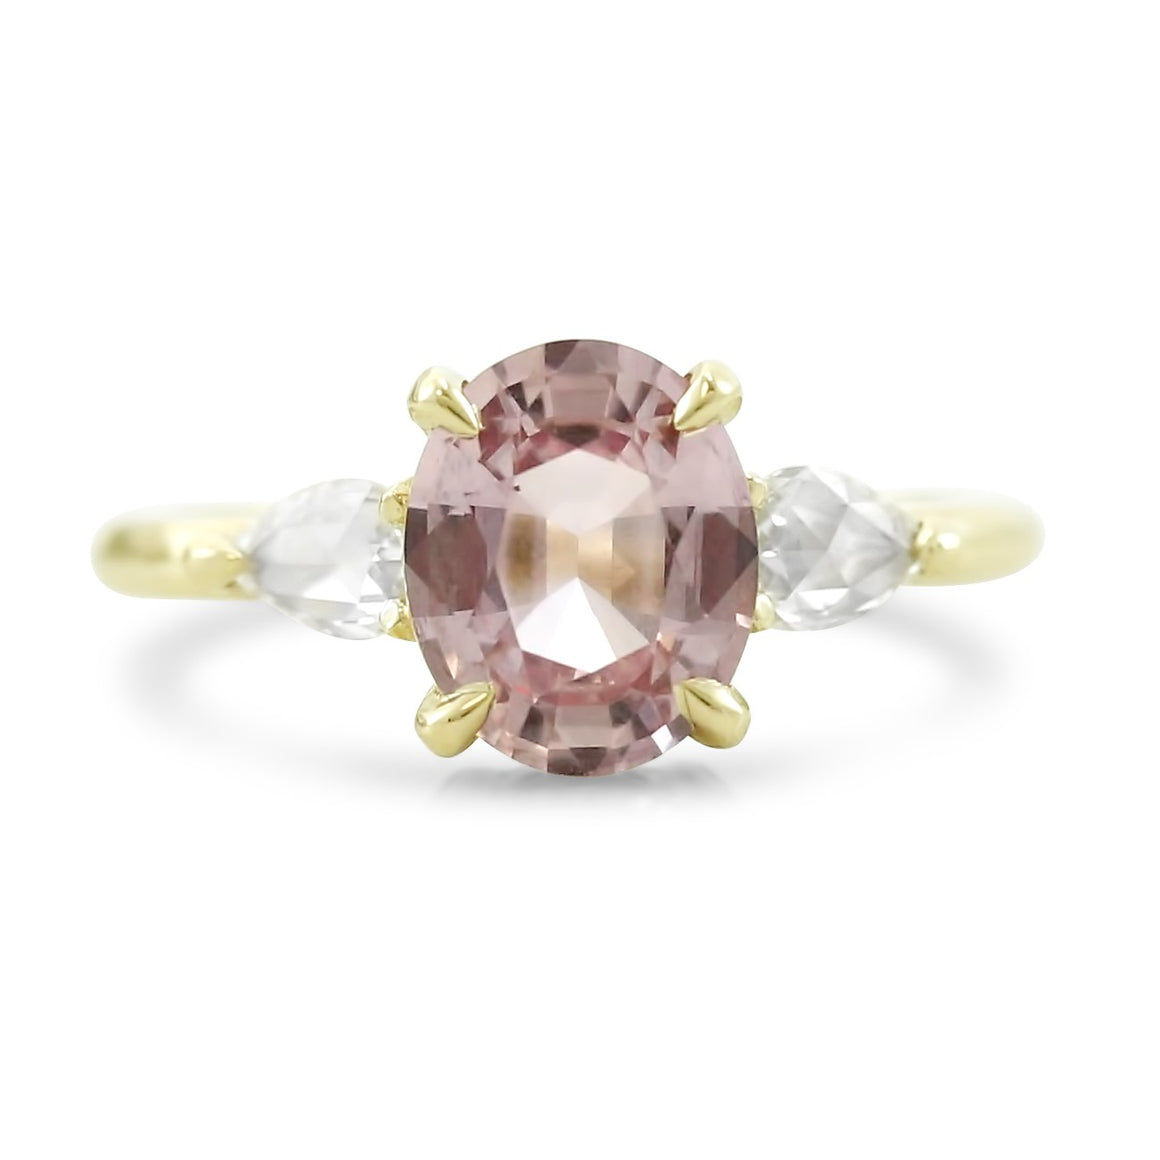 oval prong set pink sapphire engagement ring with rose cut diamond side stones 14k yellow gold